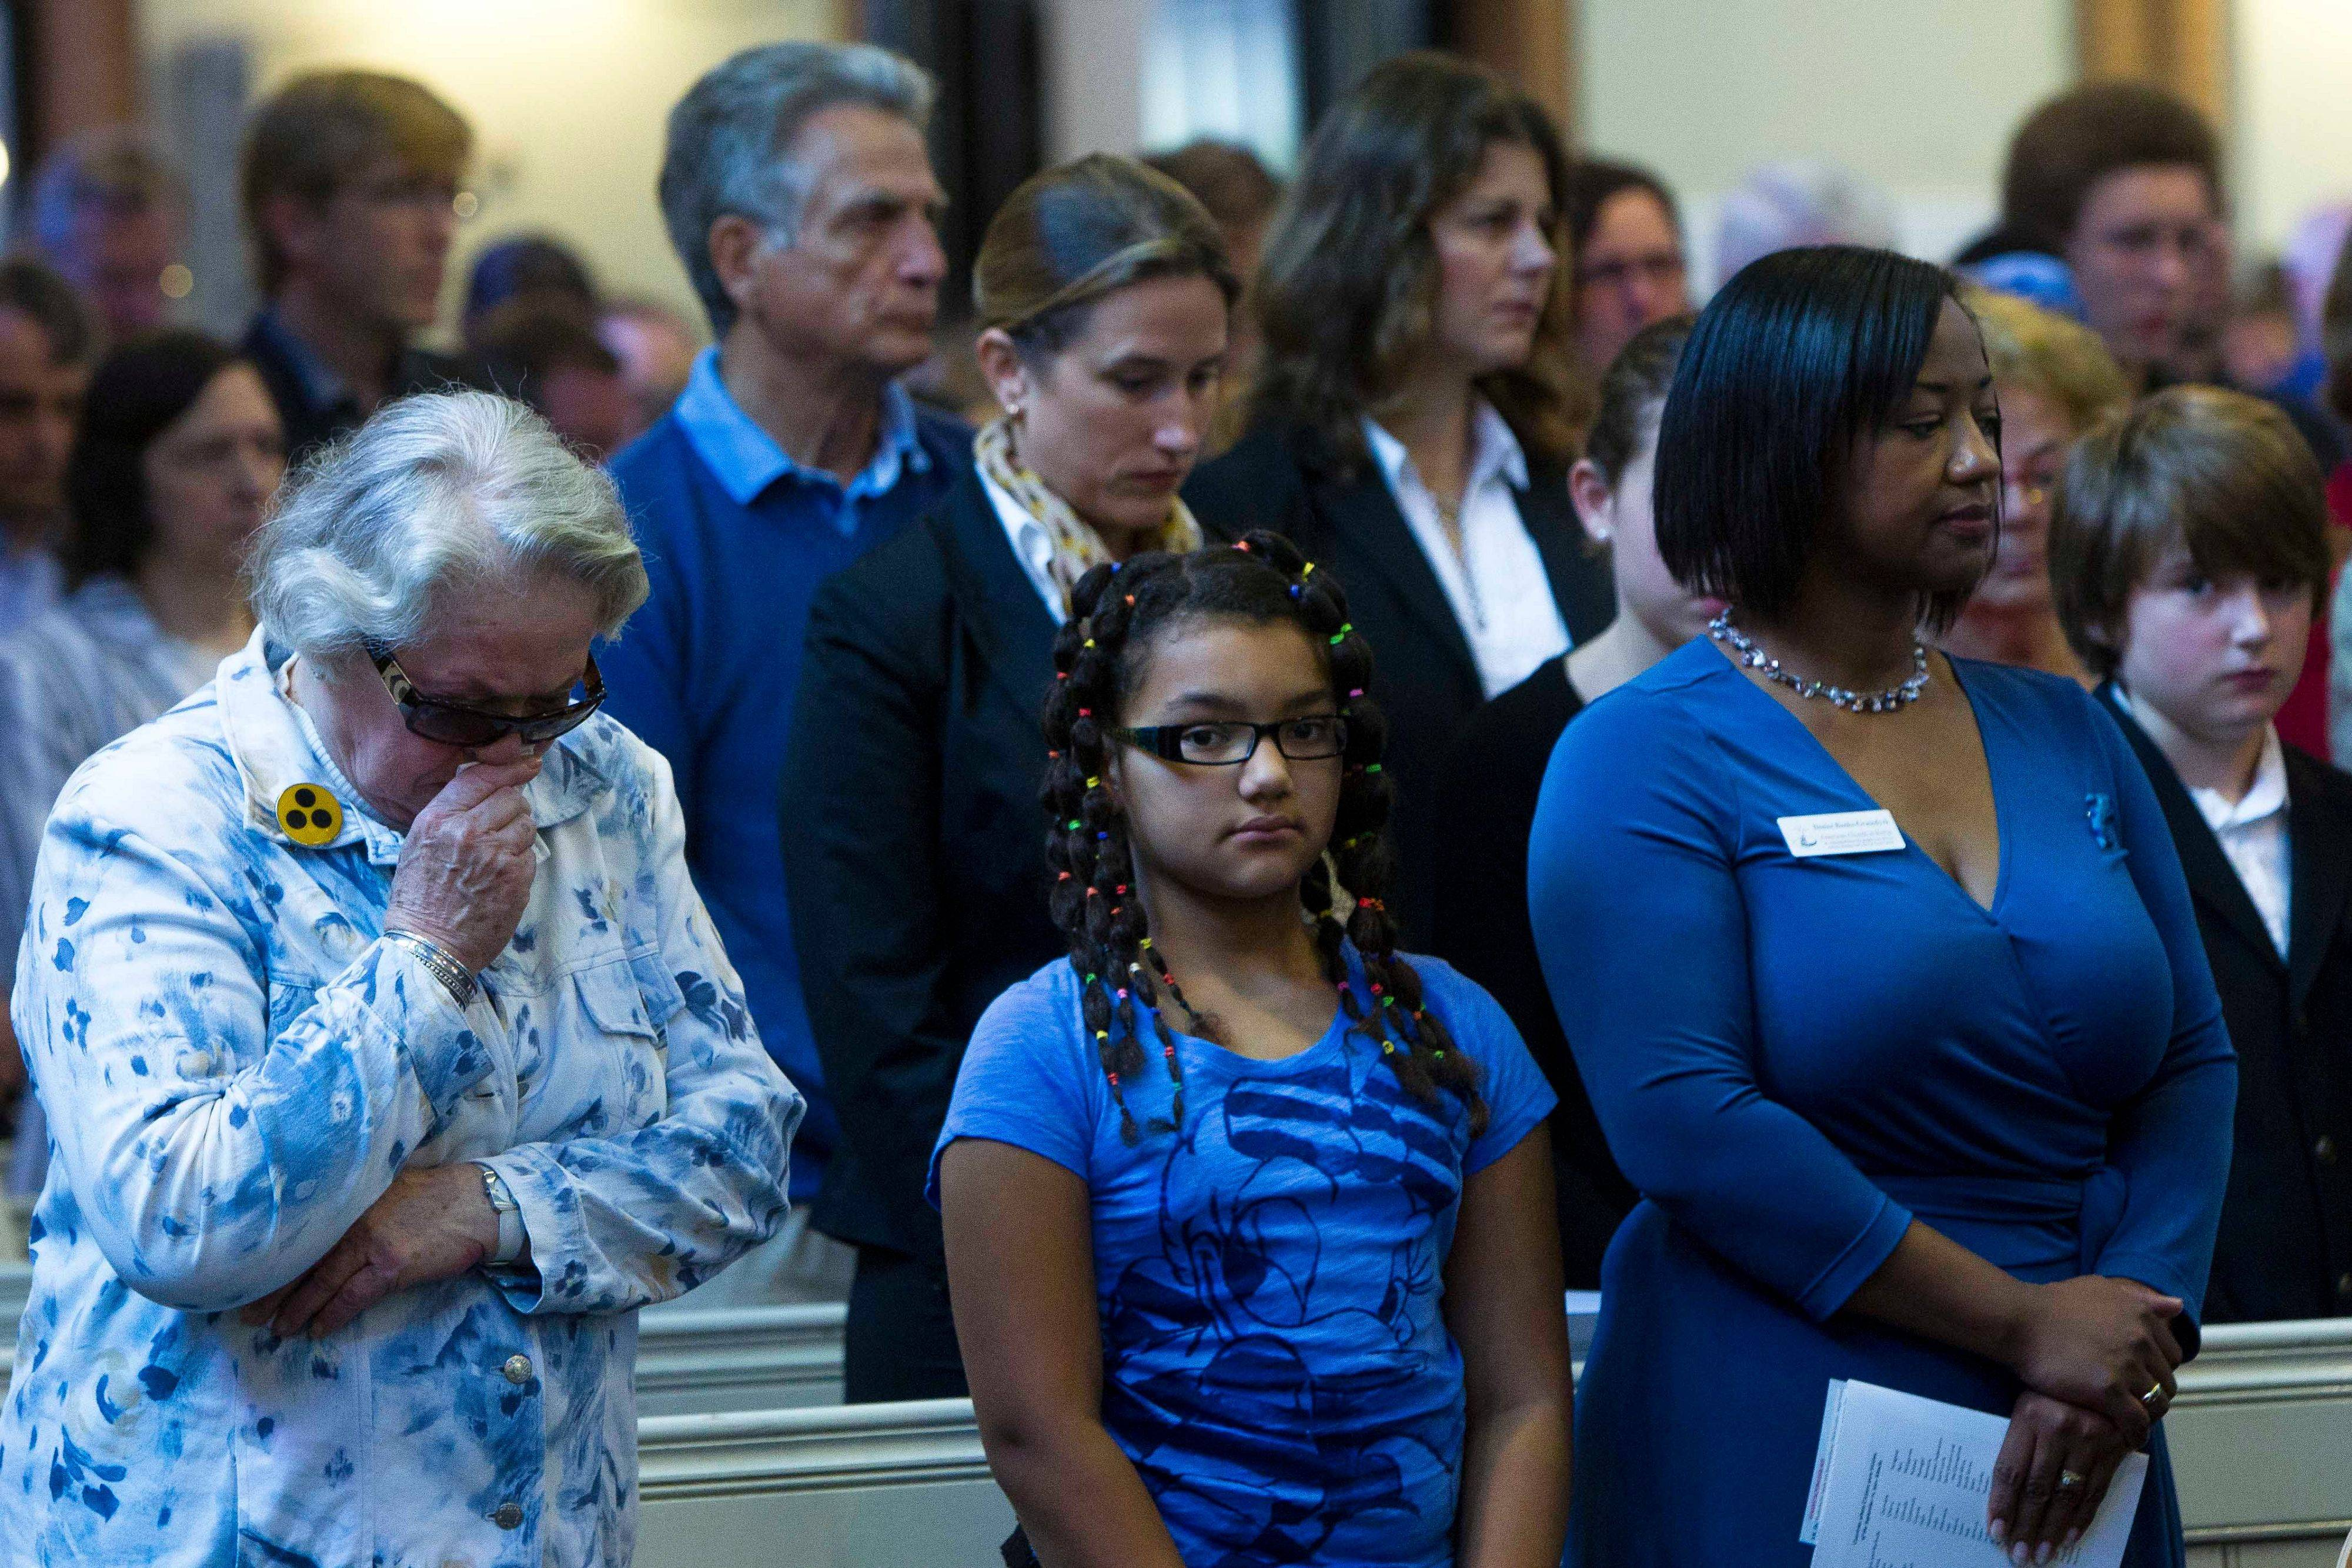 People react during a minute of silence during a memorial service to commemorate the 10th anniversary of the Sept. 11 terror attacks at the American Church in Berlin, Sunday, Sept. 11, 2011.